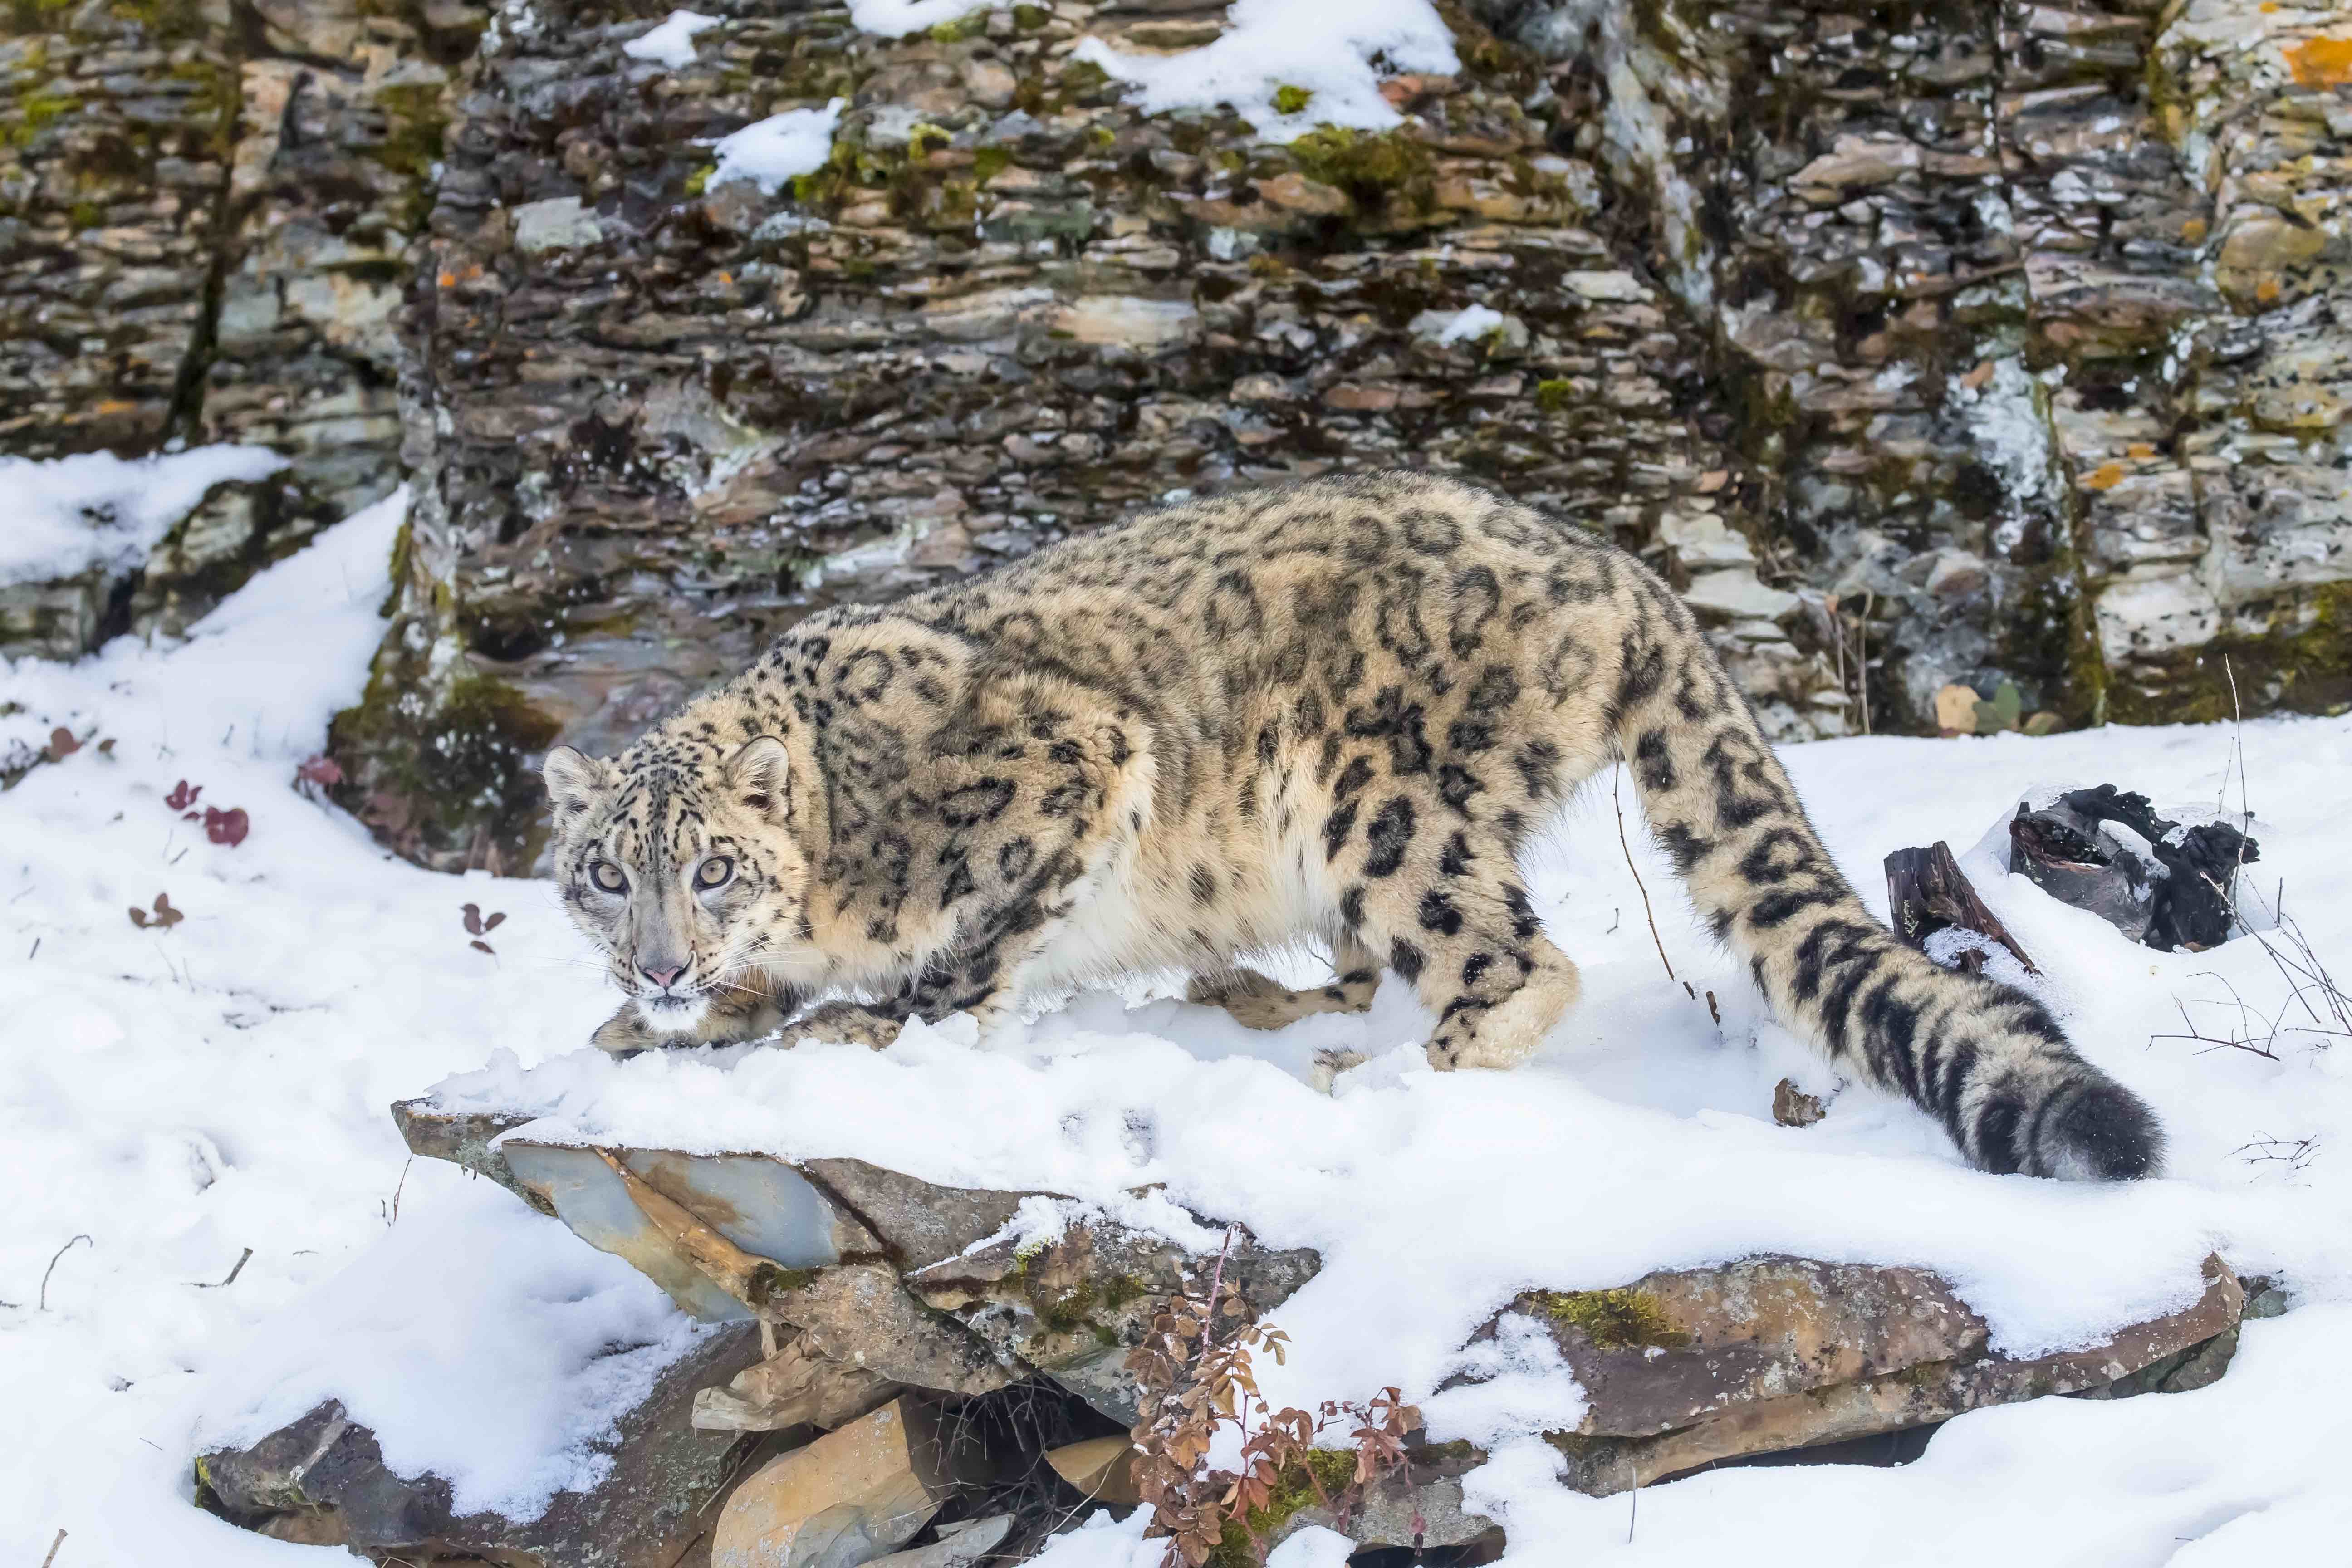 According to a new report, there only 4000 snow leopards living today due to poachers killing them daily in the high mountain ranges of Asia.